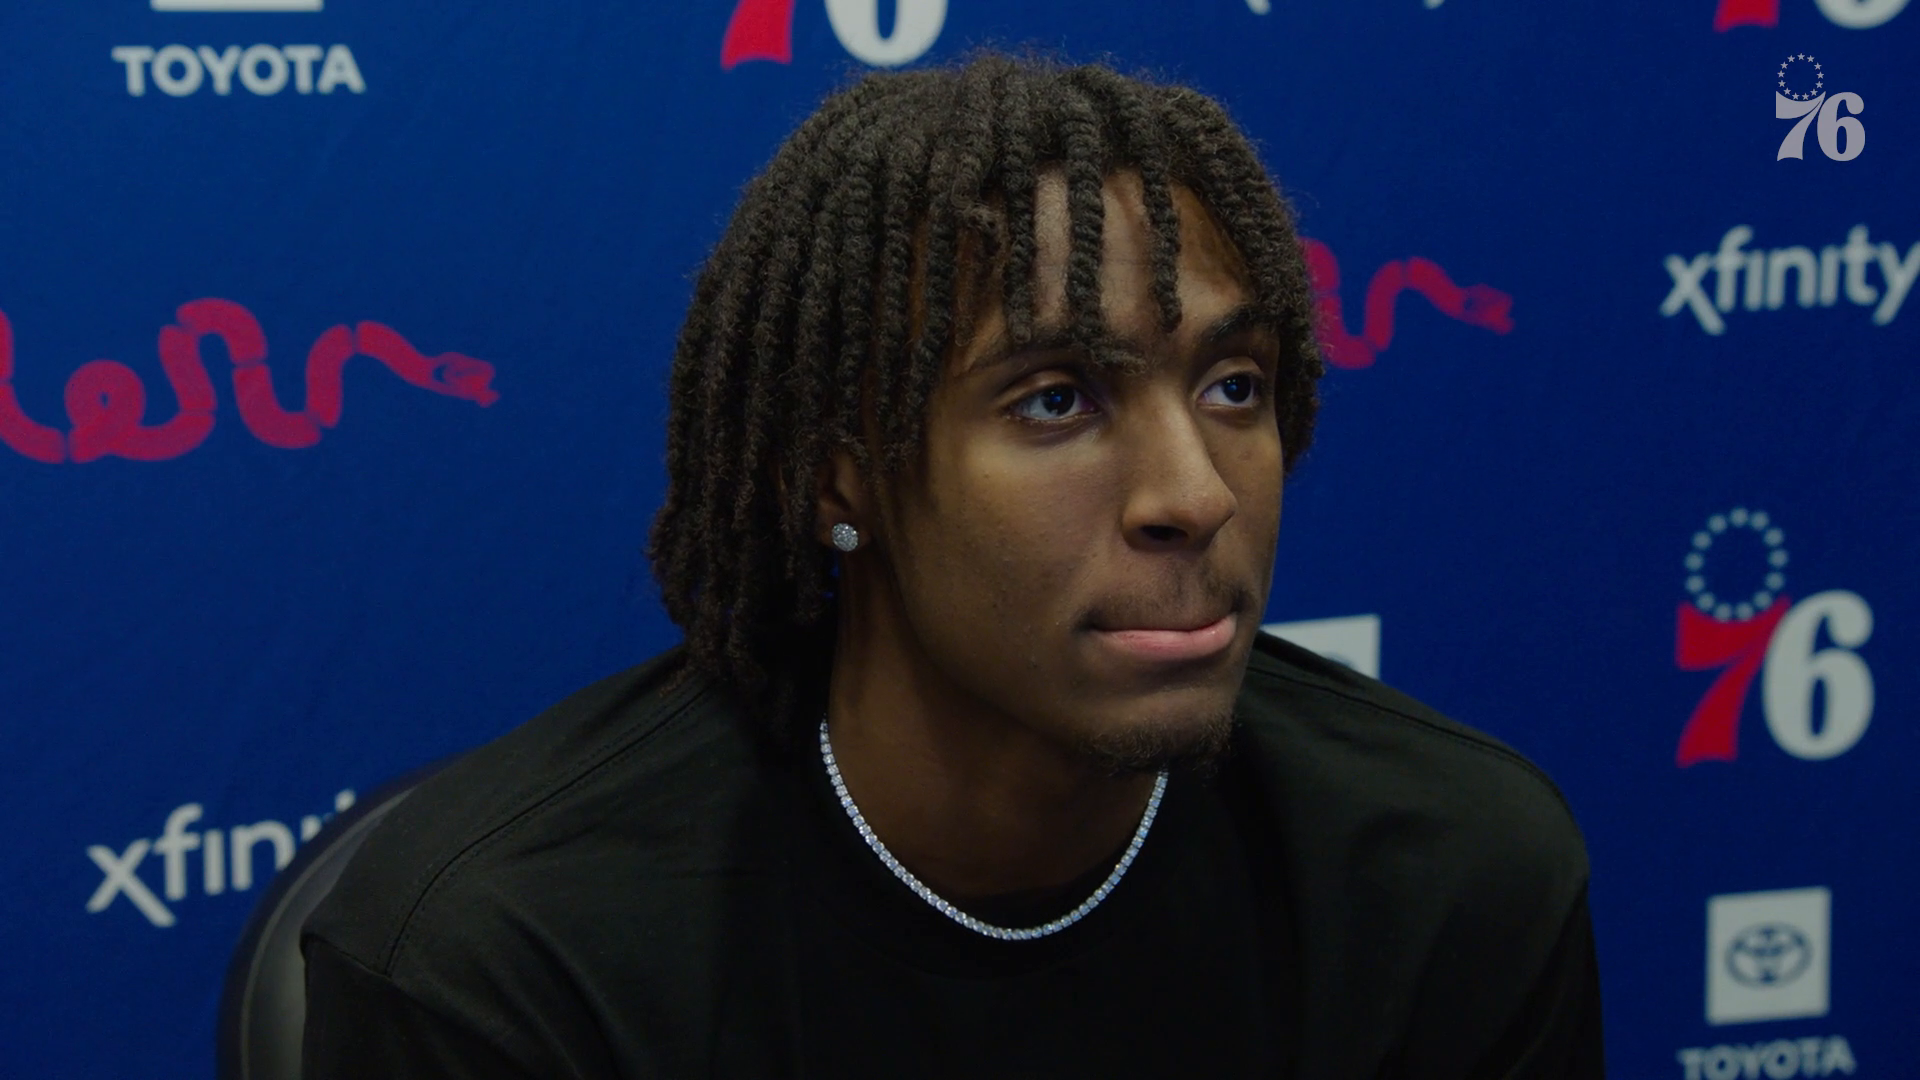 Tyrese Maxey | Postgame Media vs Orlando Magic (05.16.21)